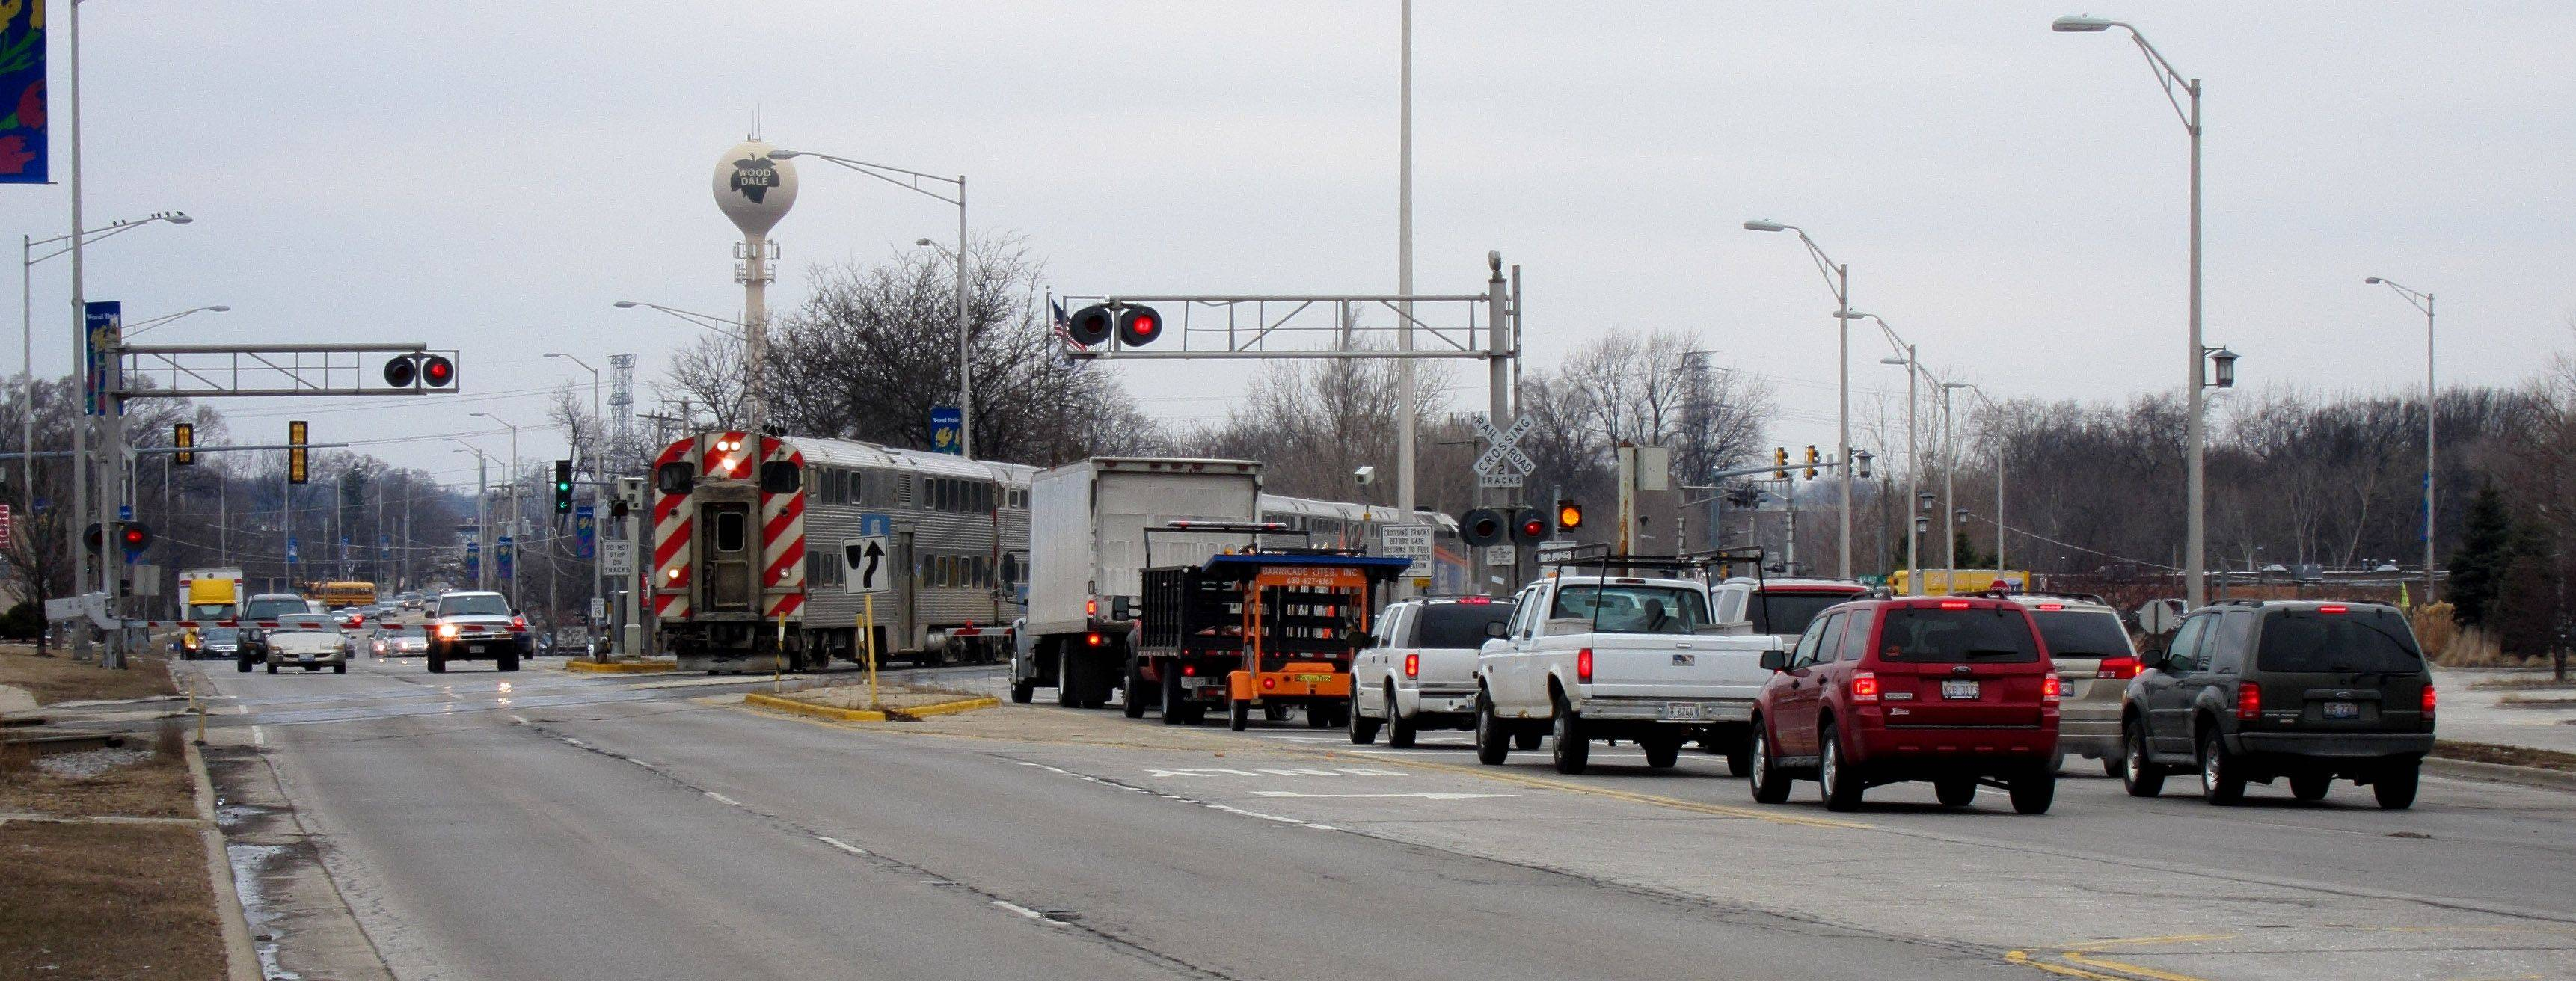 An advisory question on the April 5 ballot will ask Wood Dale voters whether they would like the city to proceed with planning and construction of a grade separation at Irving Park Road and Wood Dale roads. Several candidates in the city council race say they are opposed to the project -- despite the outcome of the referendum.